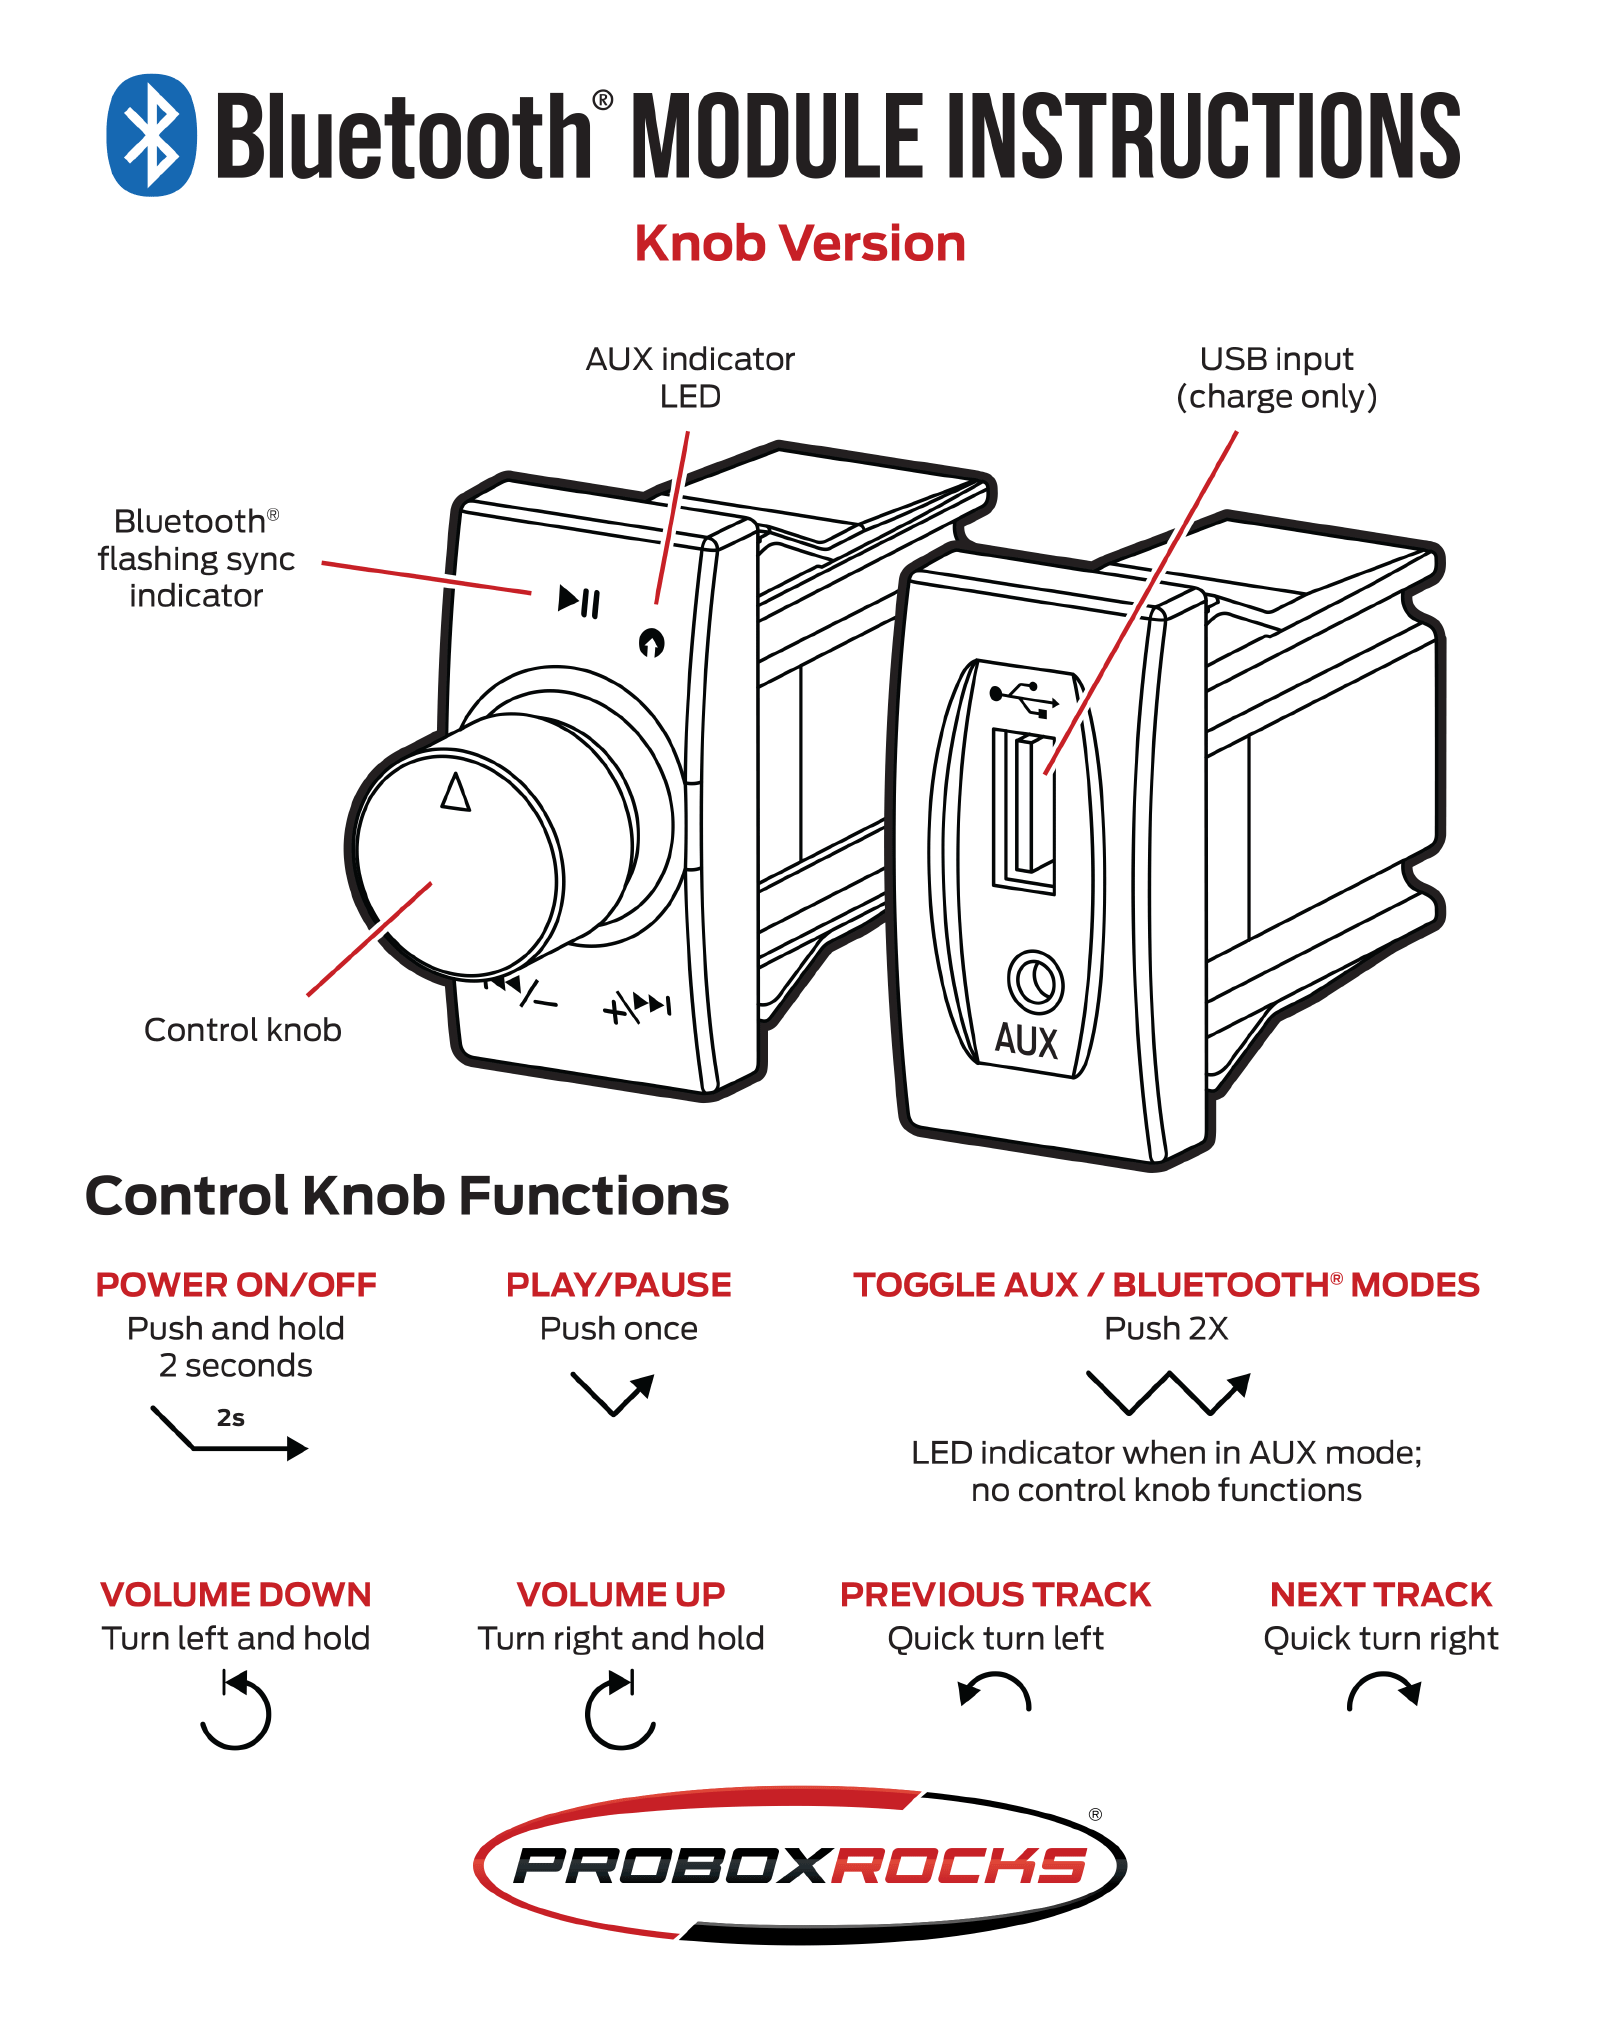 Bluetooth knob module instructions